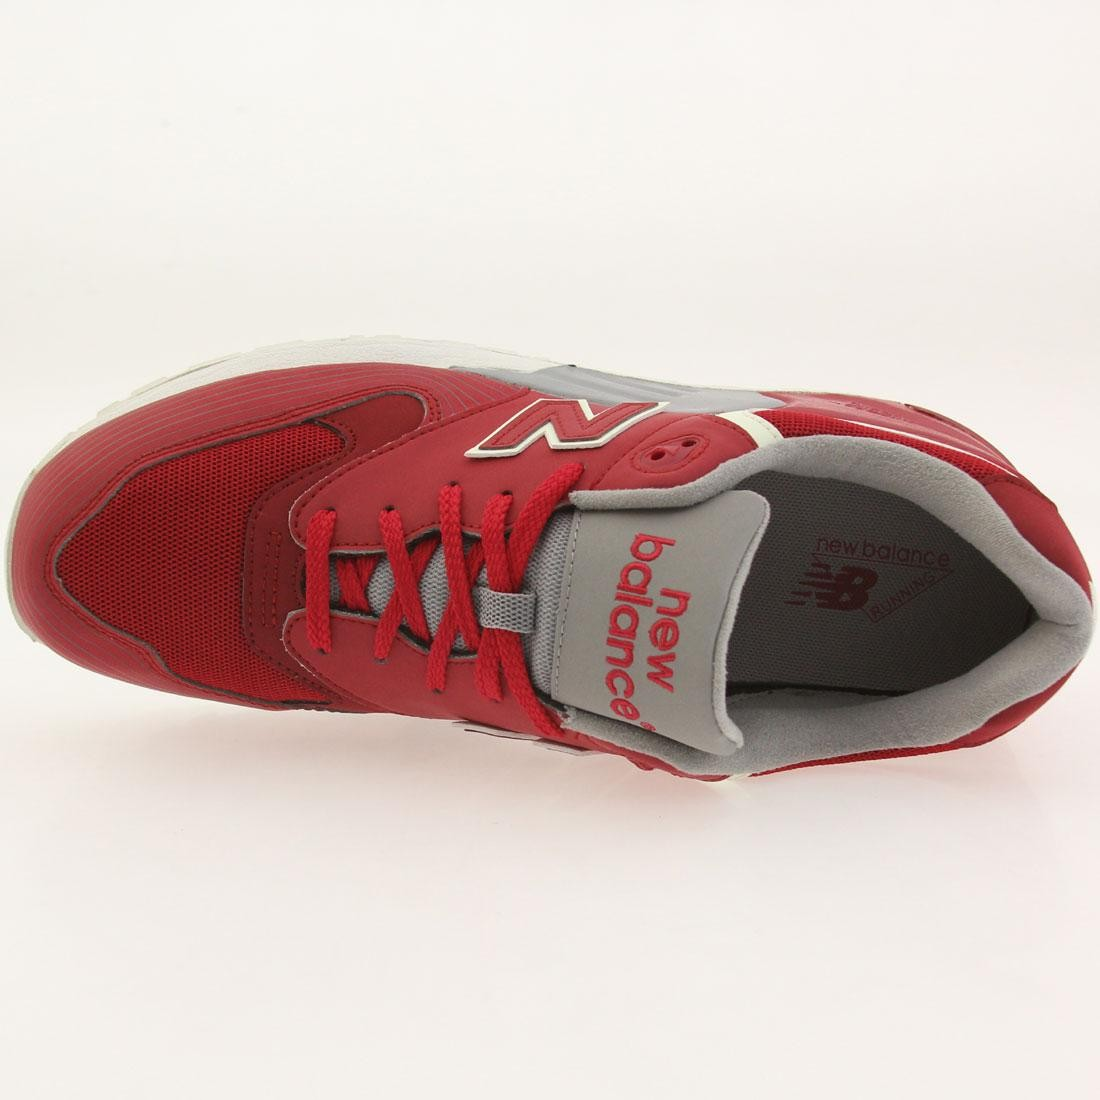 innovative design 8a332 57bfa New Balance Men 999 Elite Edition Solarized ML999EA (red)